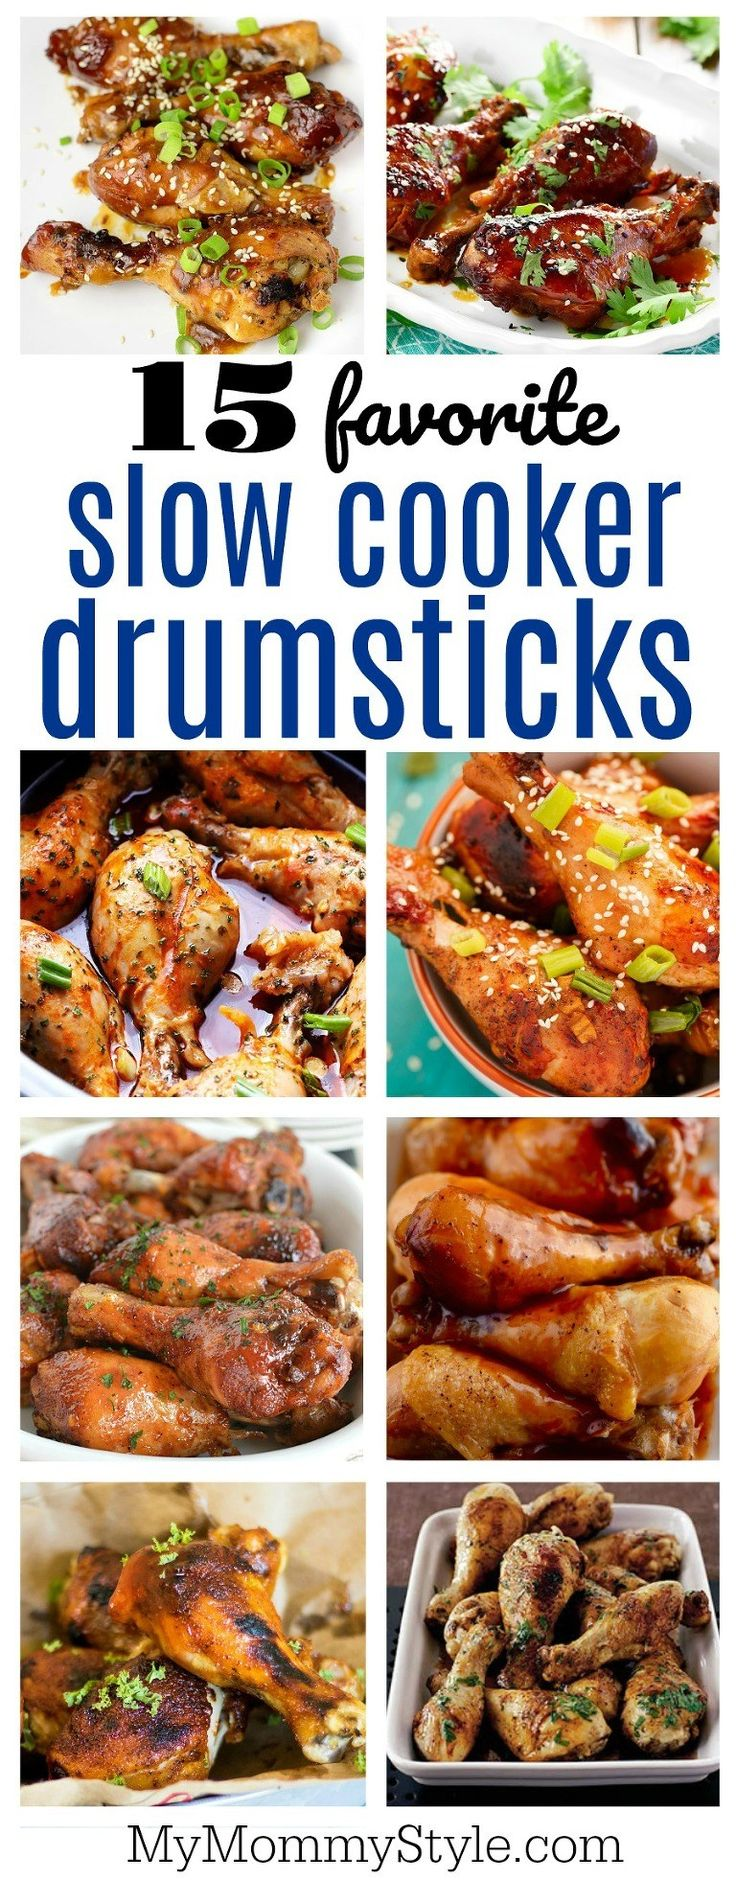 15 family favorite slow cooker drumsticks recipes, these would work in a slow cooker too, just cut the time down!